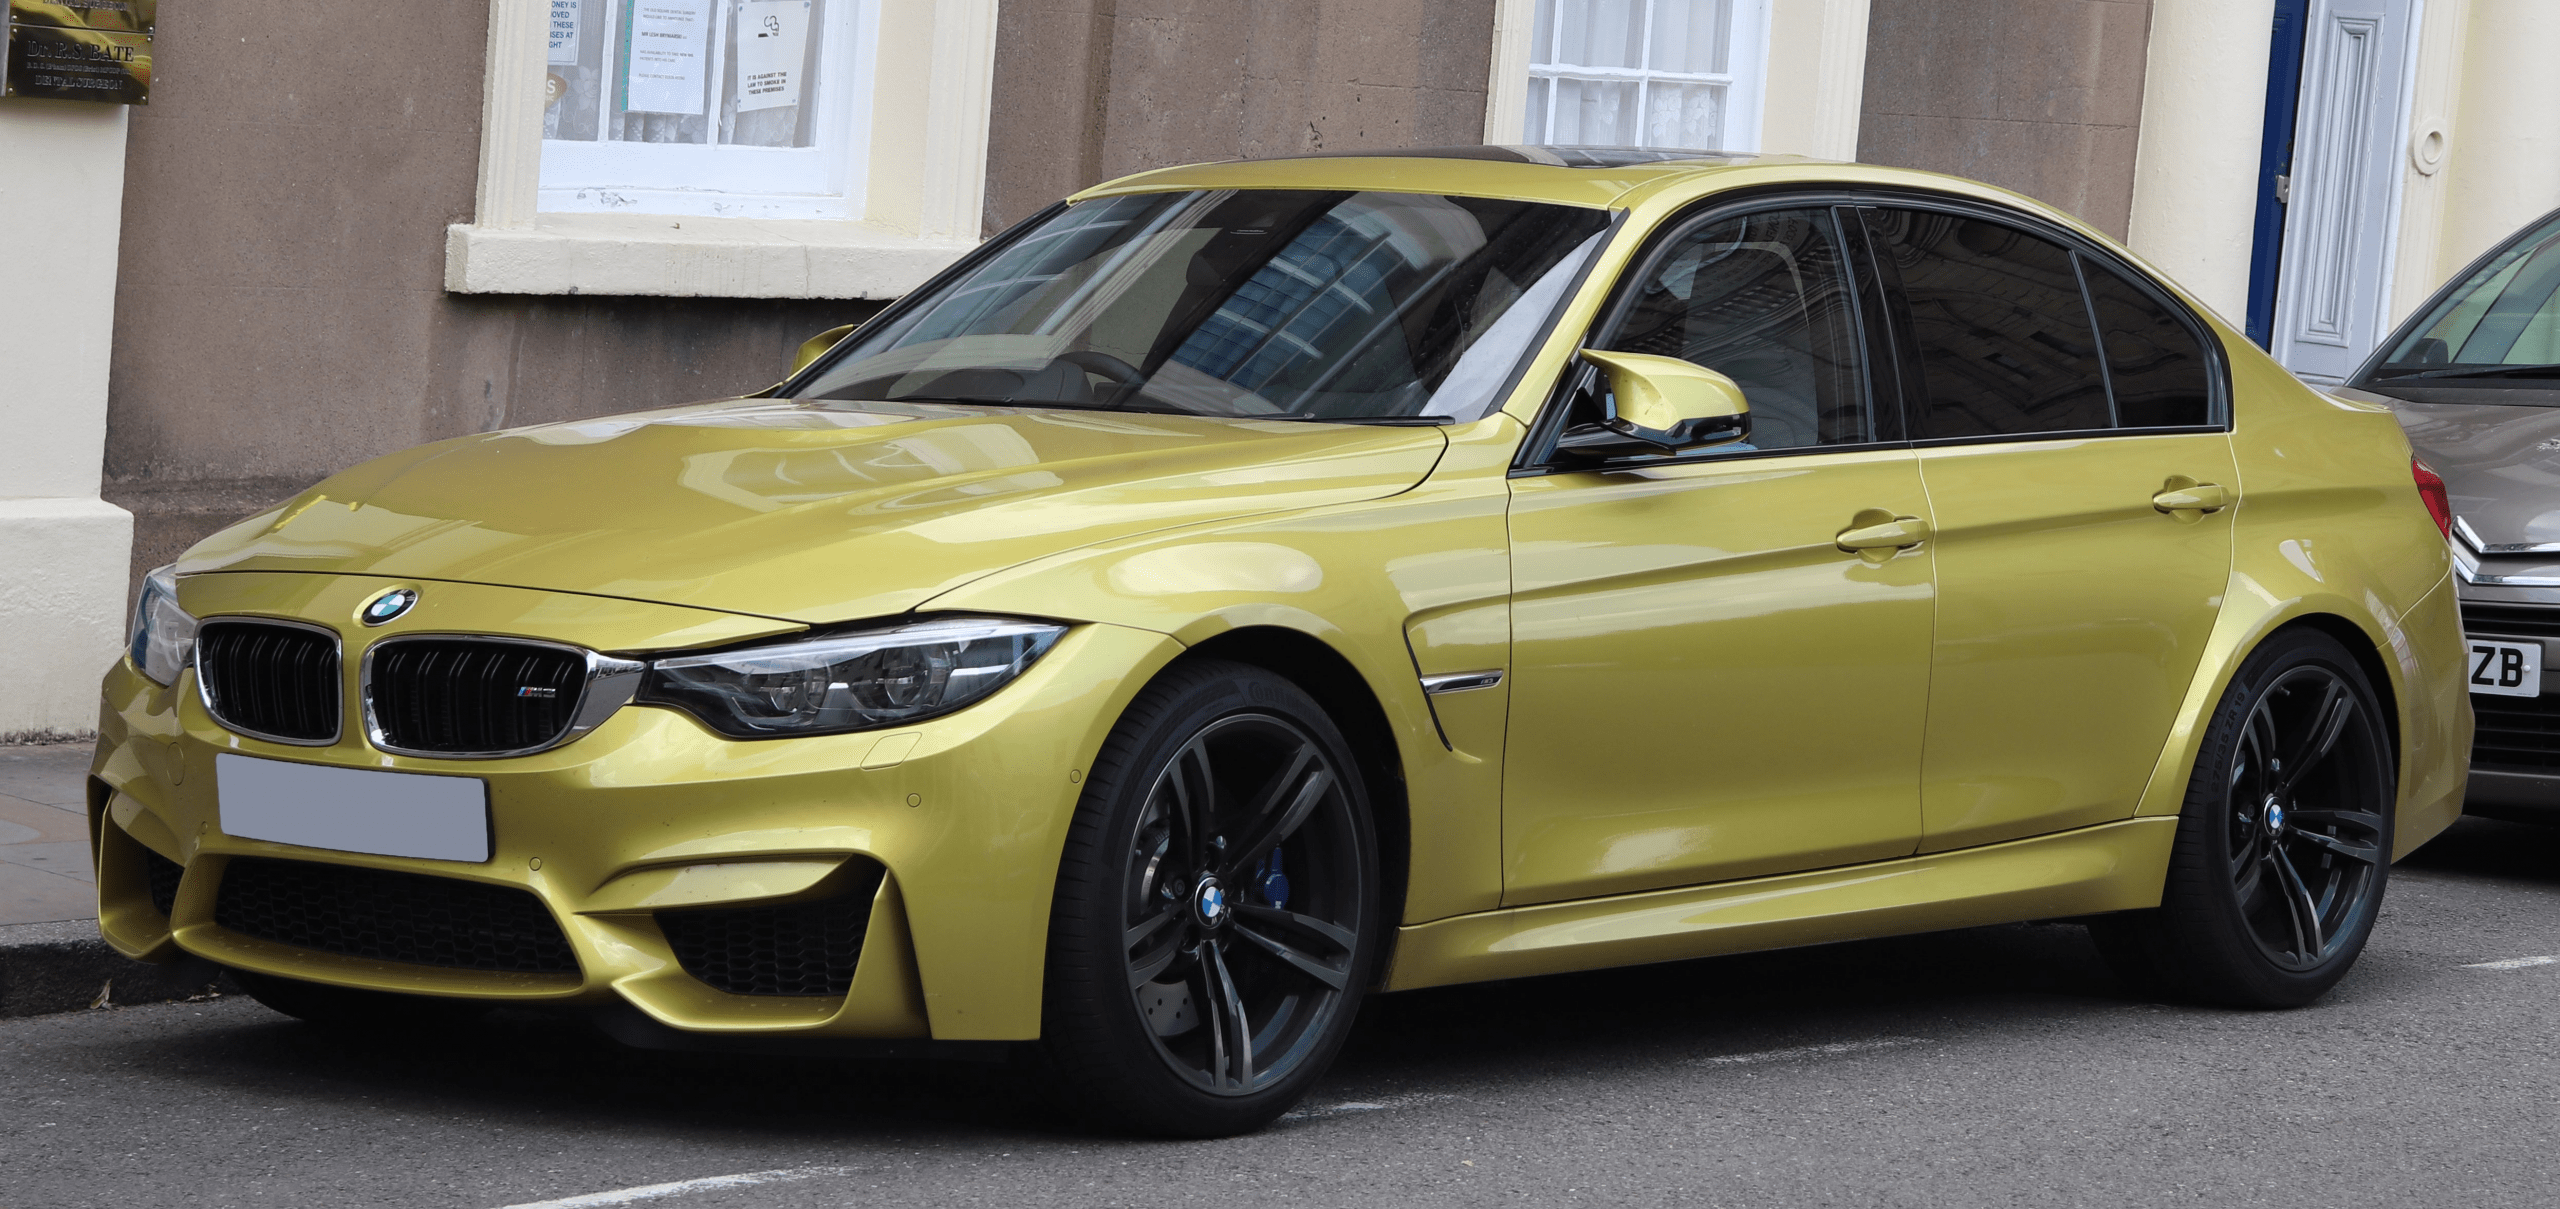 2021 Bmw M5 Get New Engine System Release Date And Concept In 2020 Bmw Bmw Car Models Bmw M9